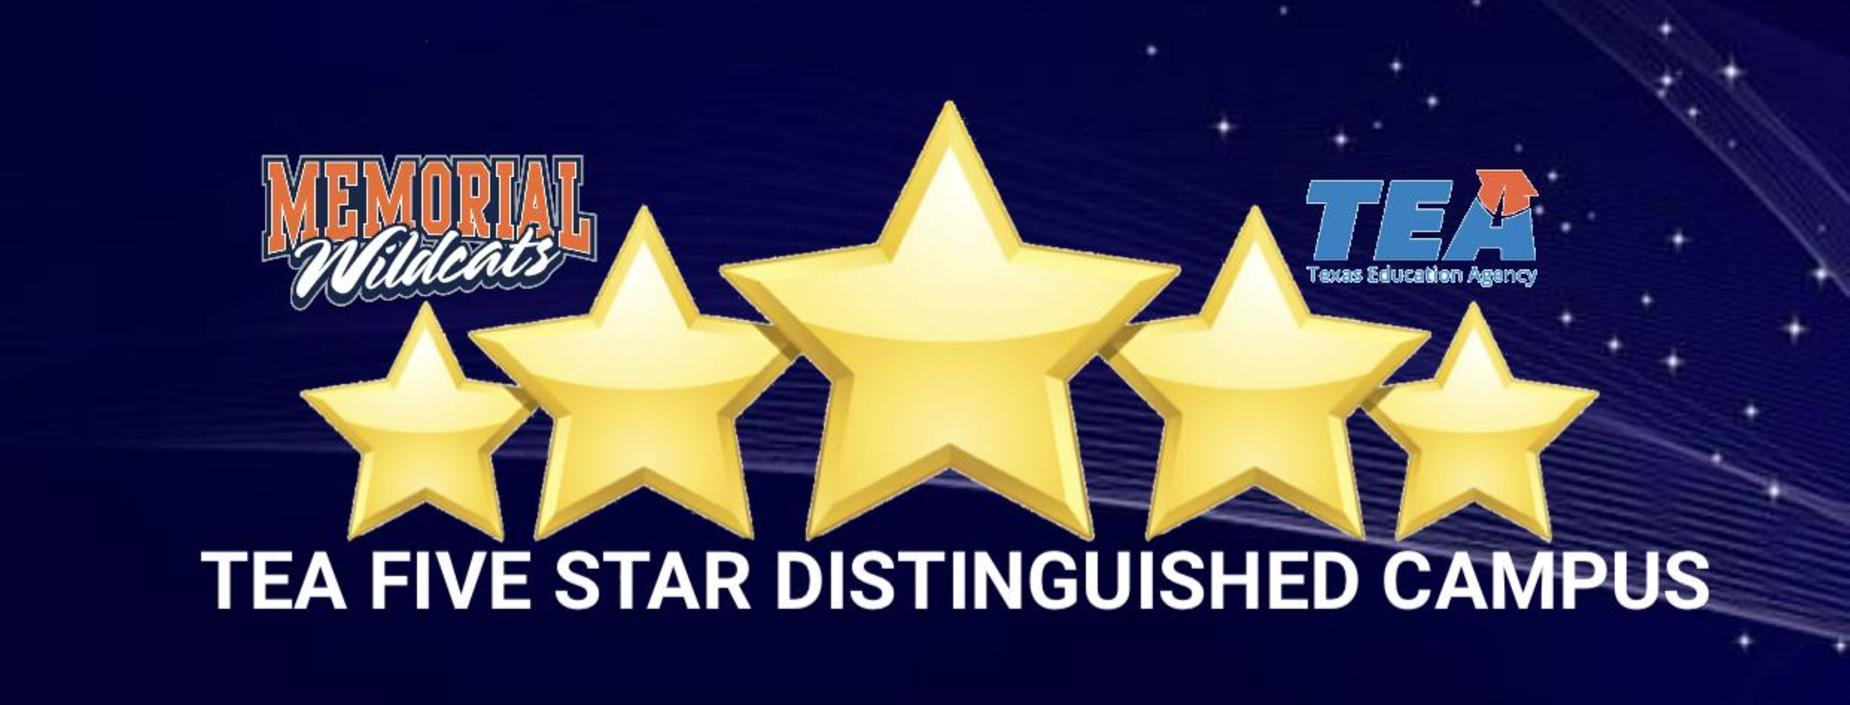 TEA 5 STAR DISTINGUISHED CAMPUS